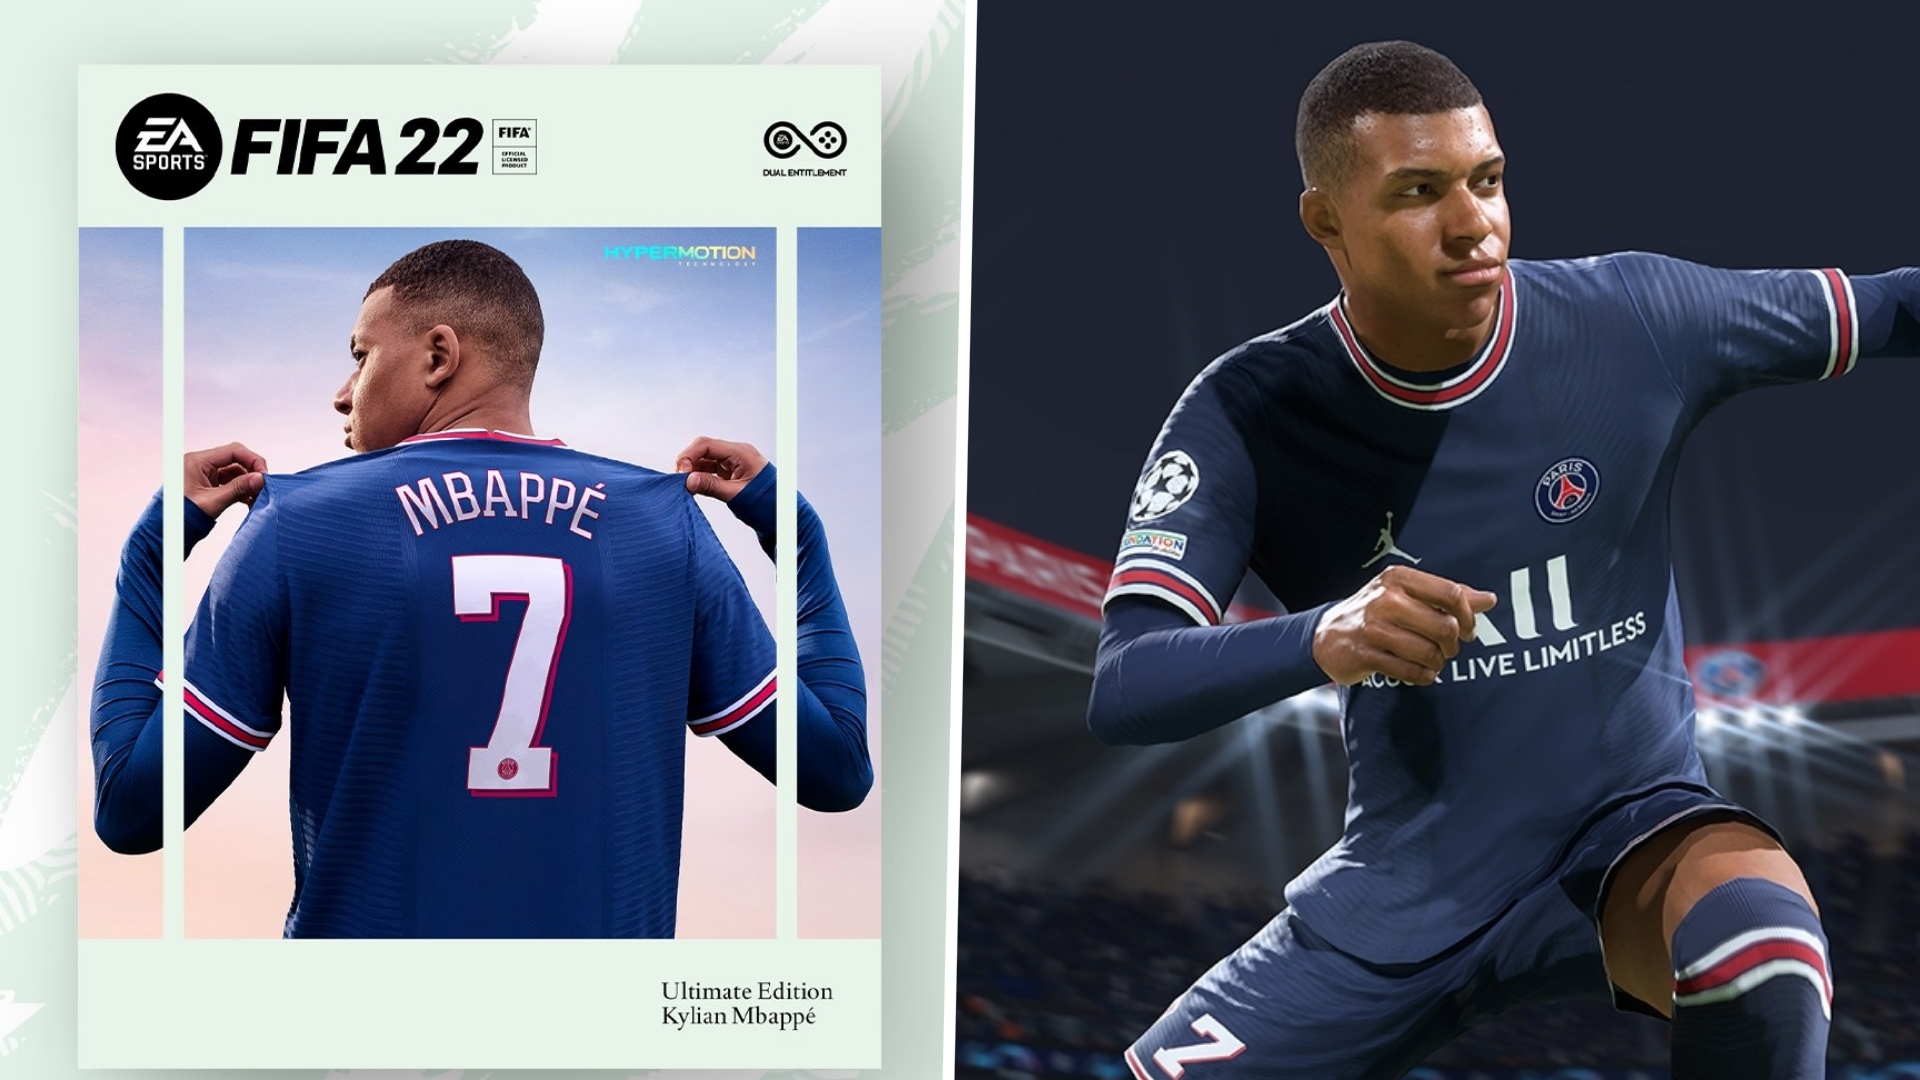 How to play FIFA 22 early on PlayStation & Xbox before the official release - sporting news